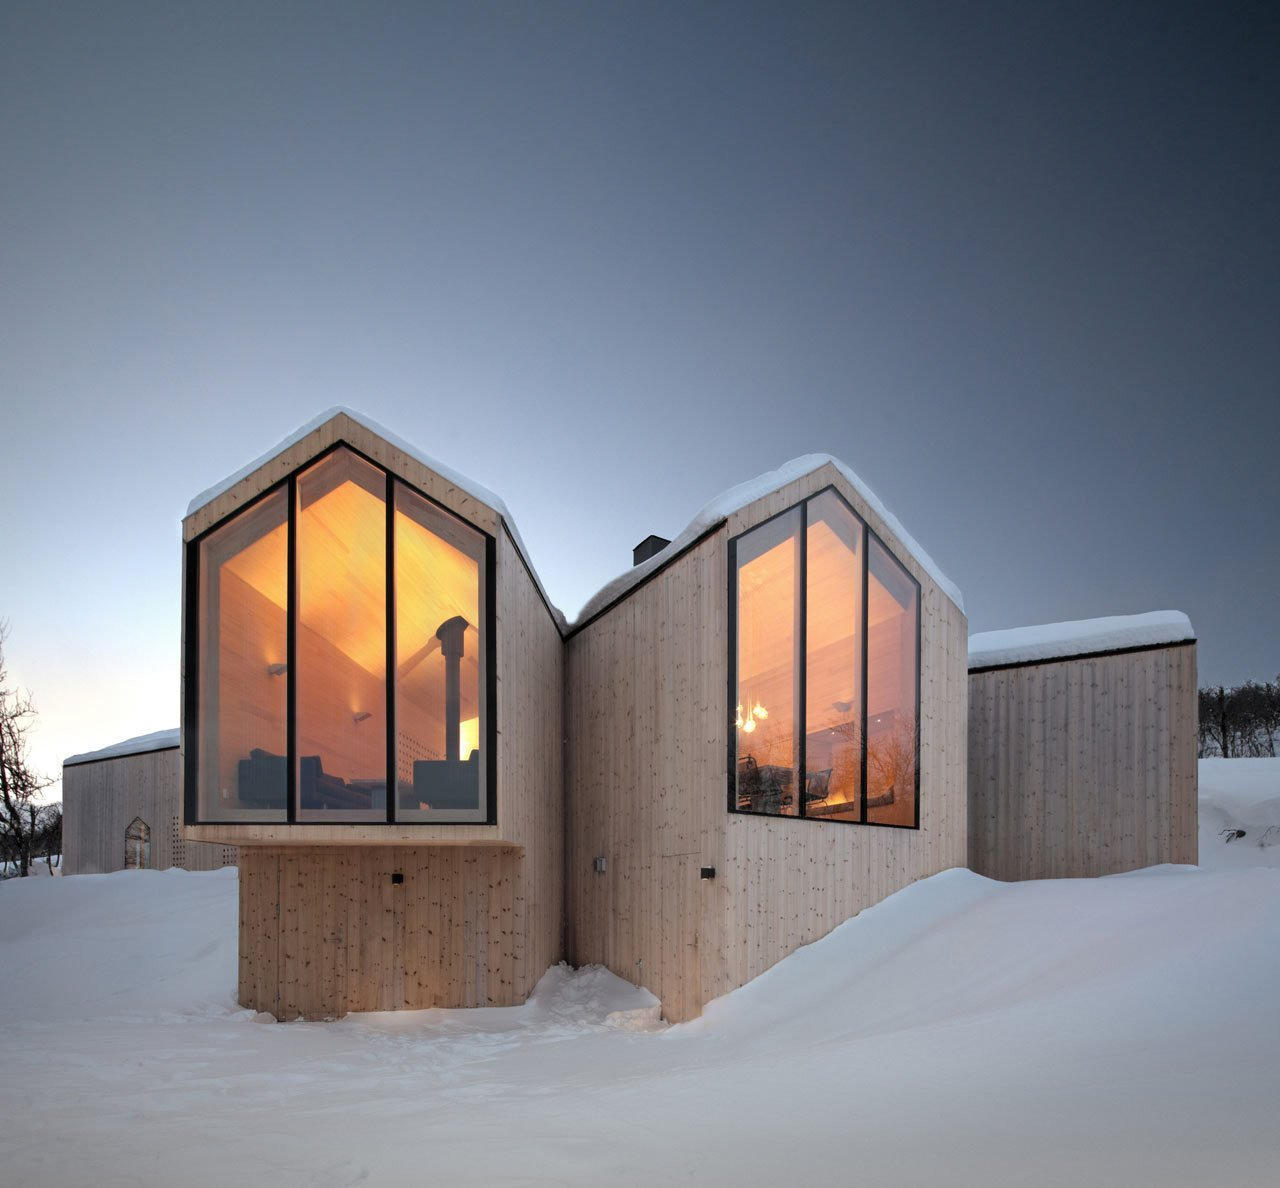 20 Modern Winter Cabins We'd Love to Hole Up In